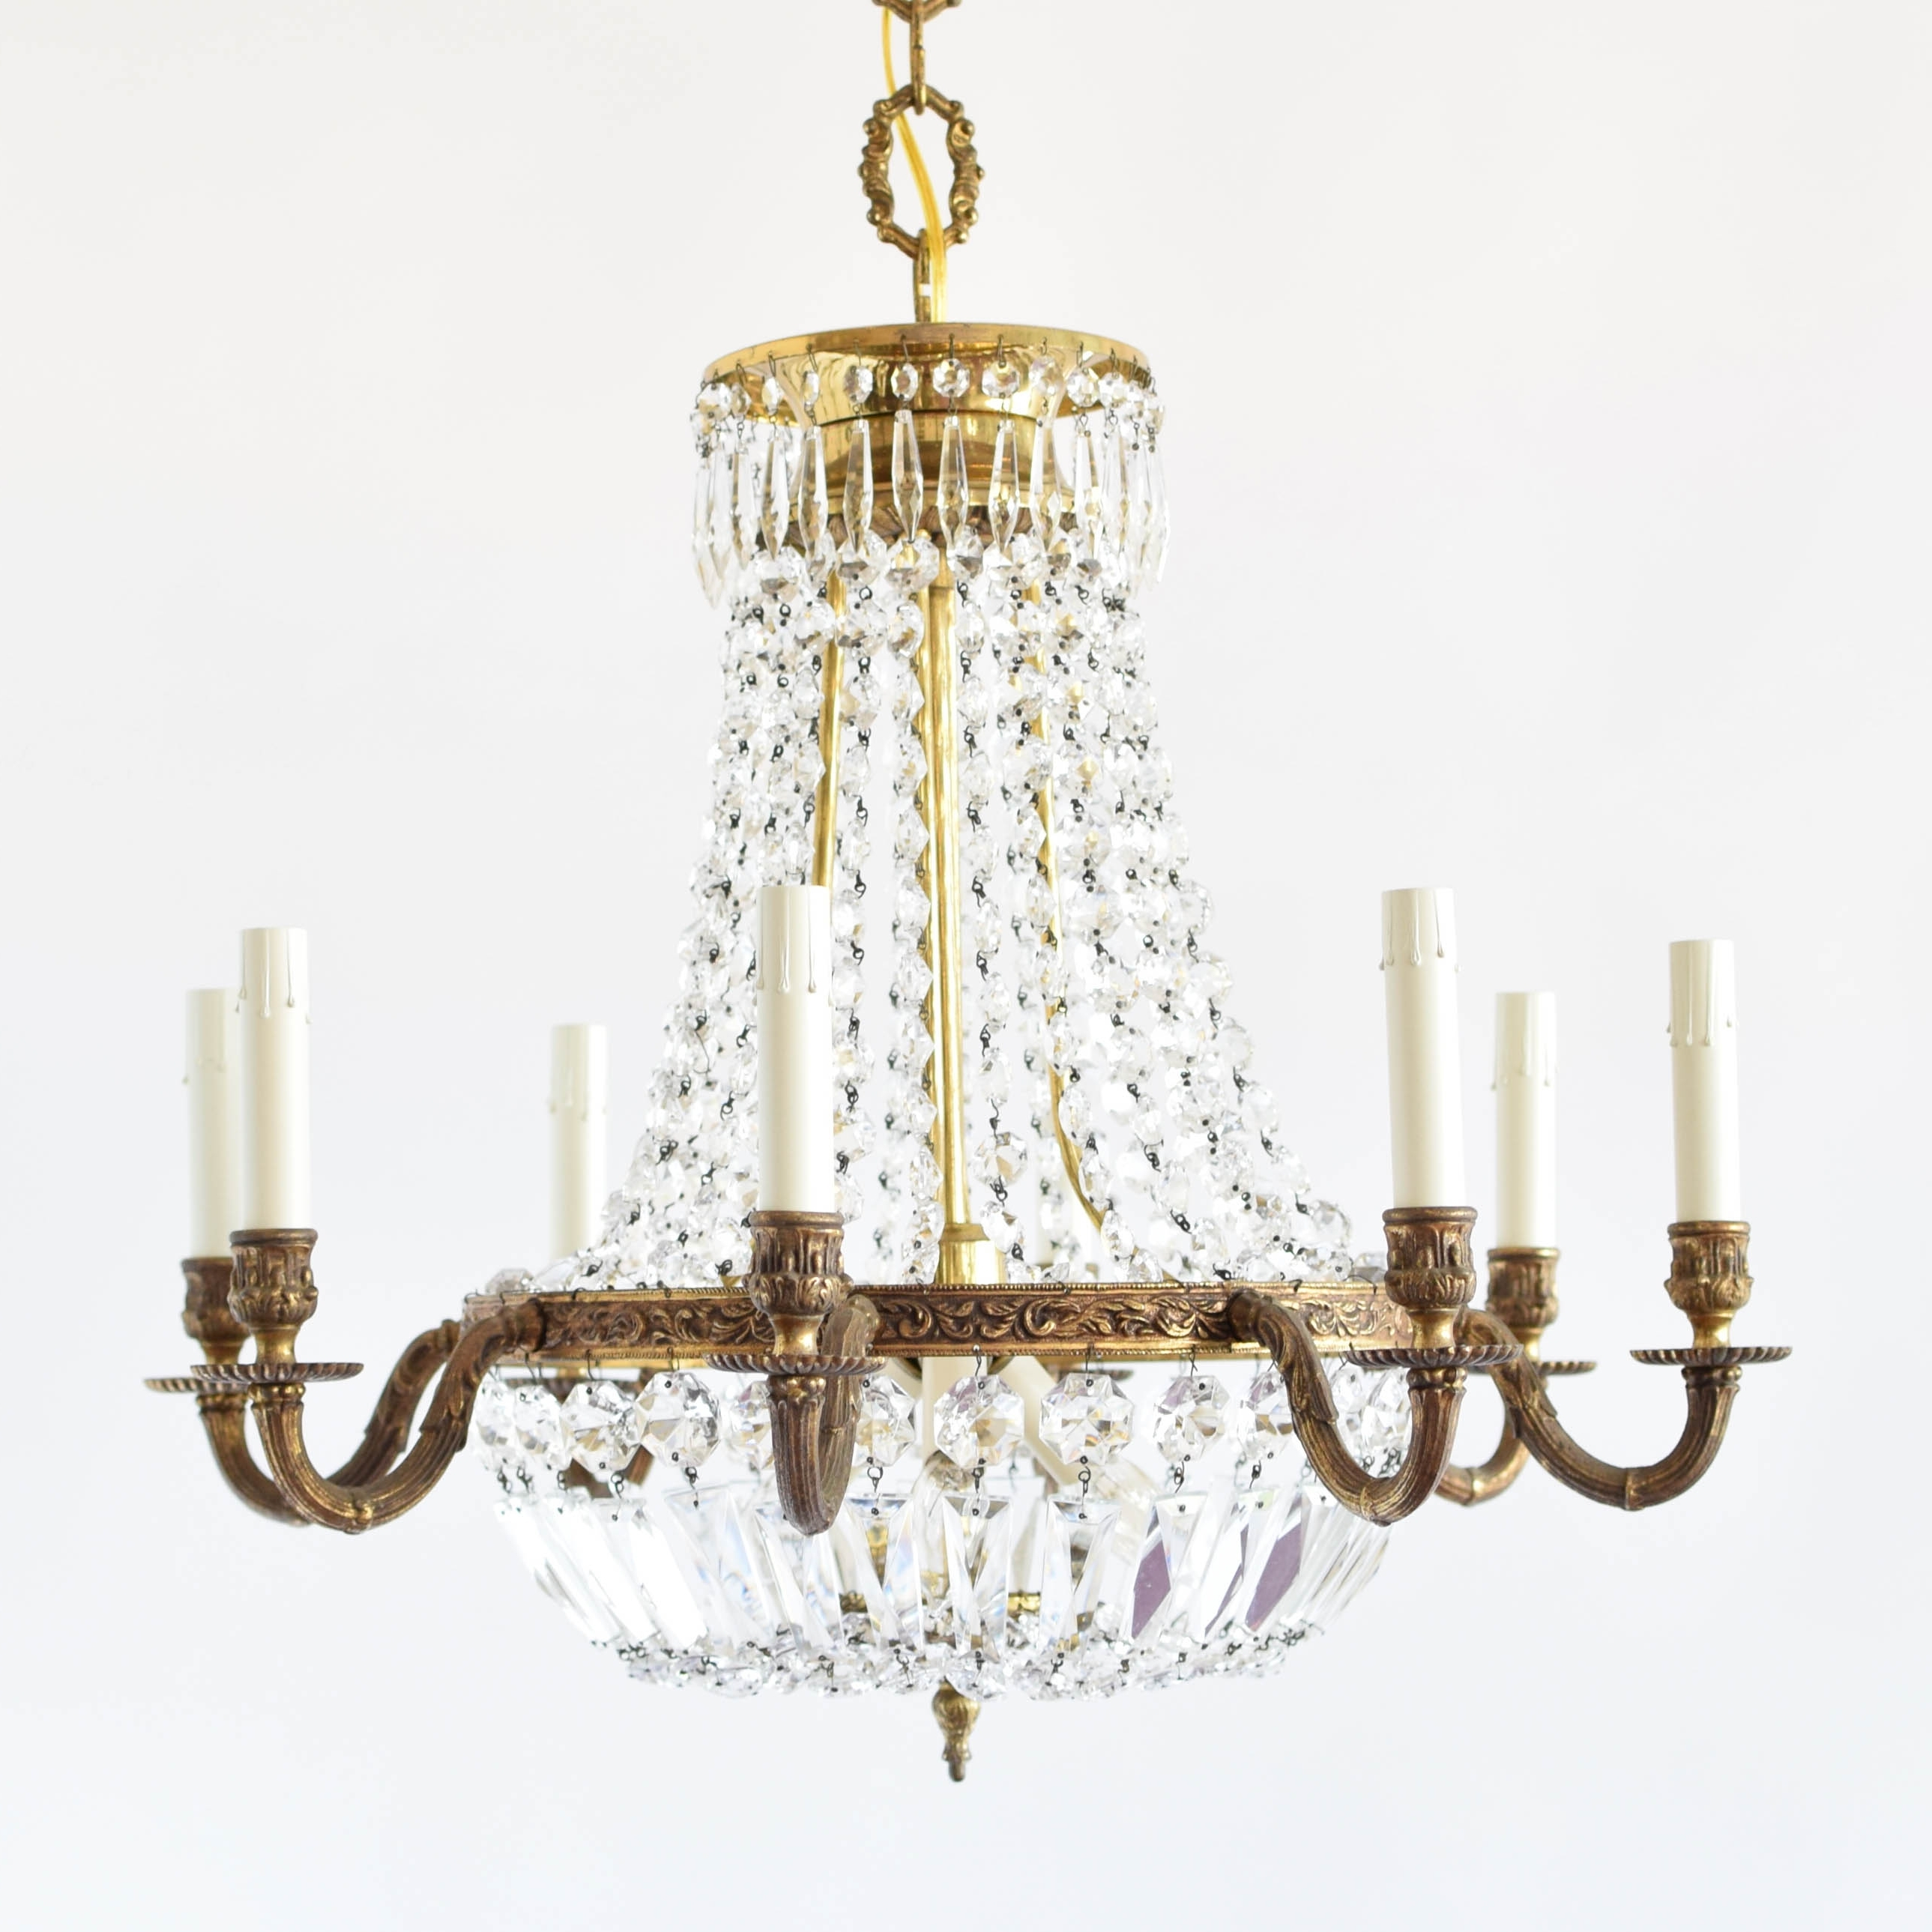 Fashionable Vintage Style Chandelier Intended For Empire Style Crystal Chandelier – The Big Chandelier (View 5 of 15)